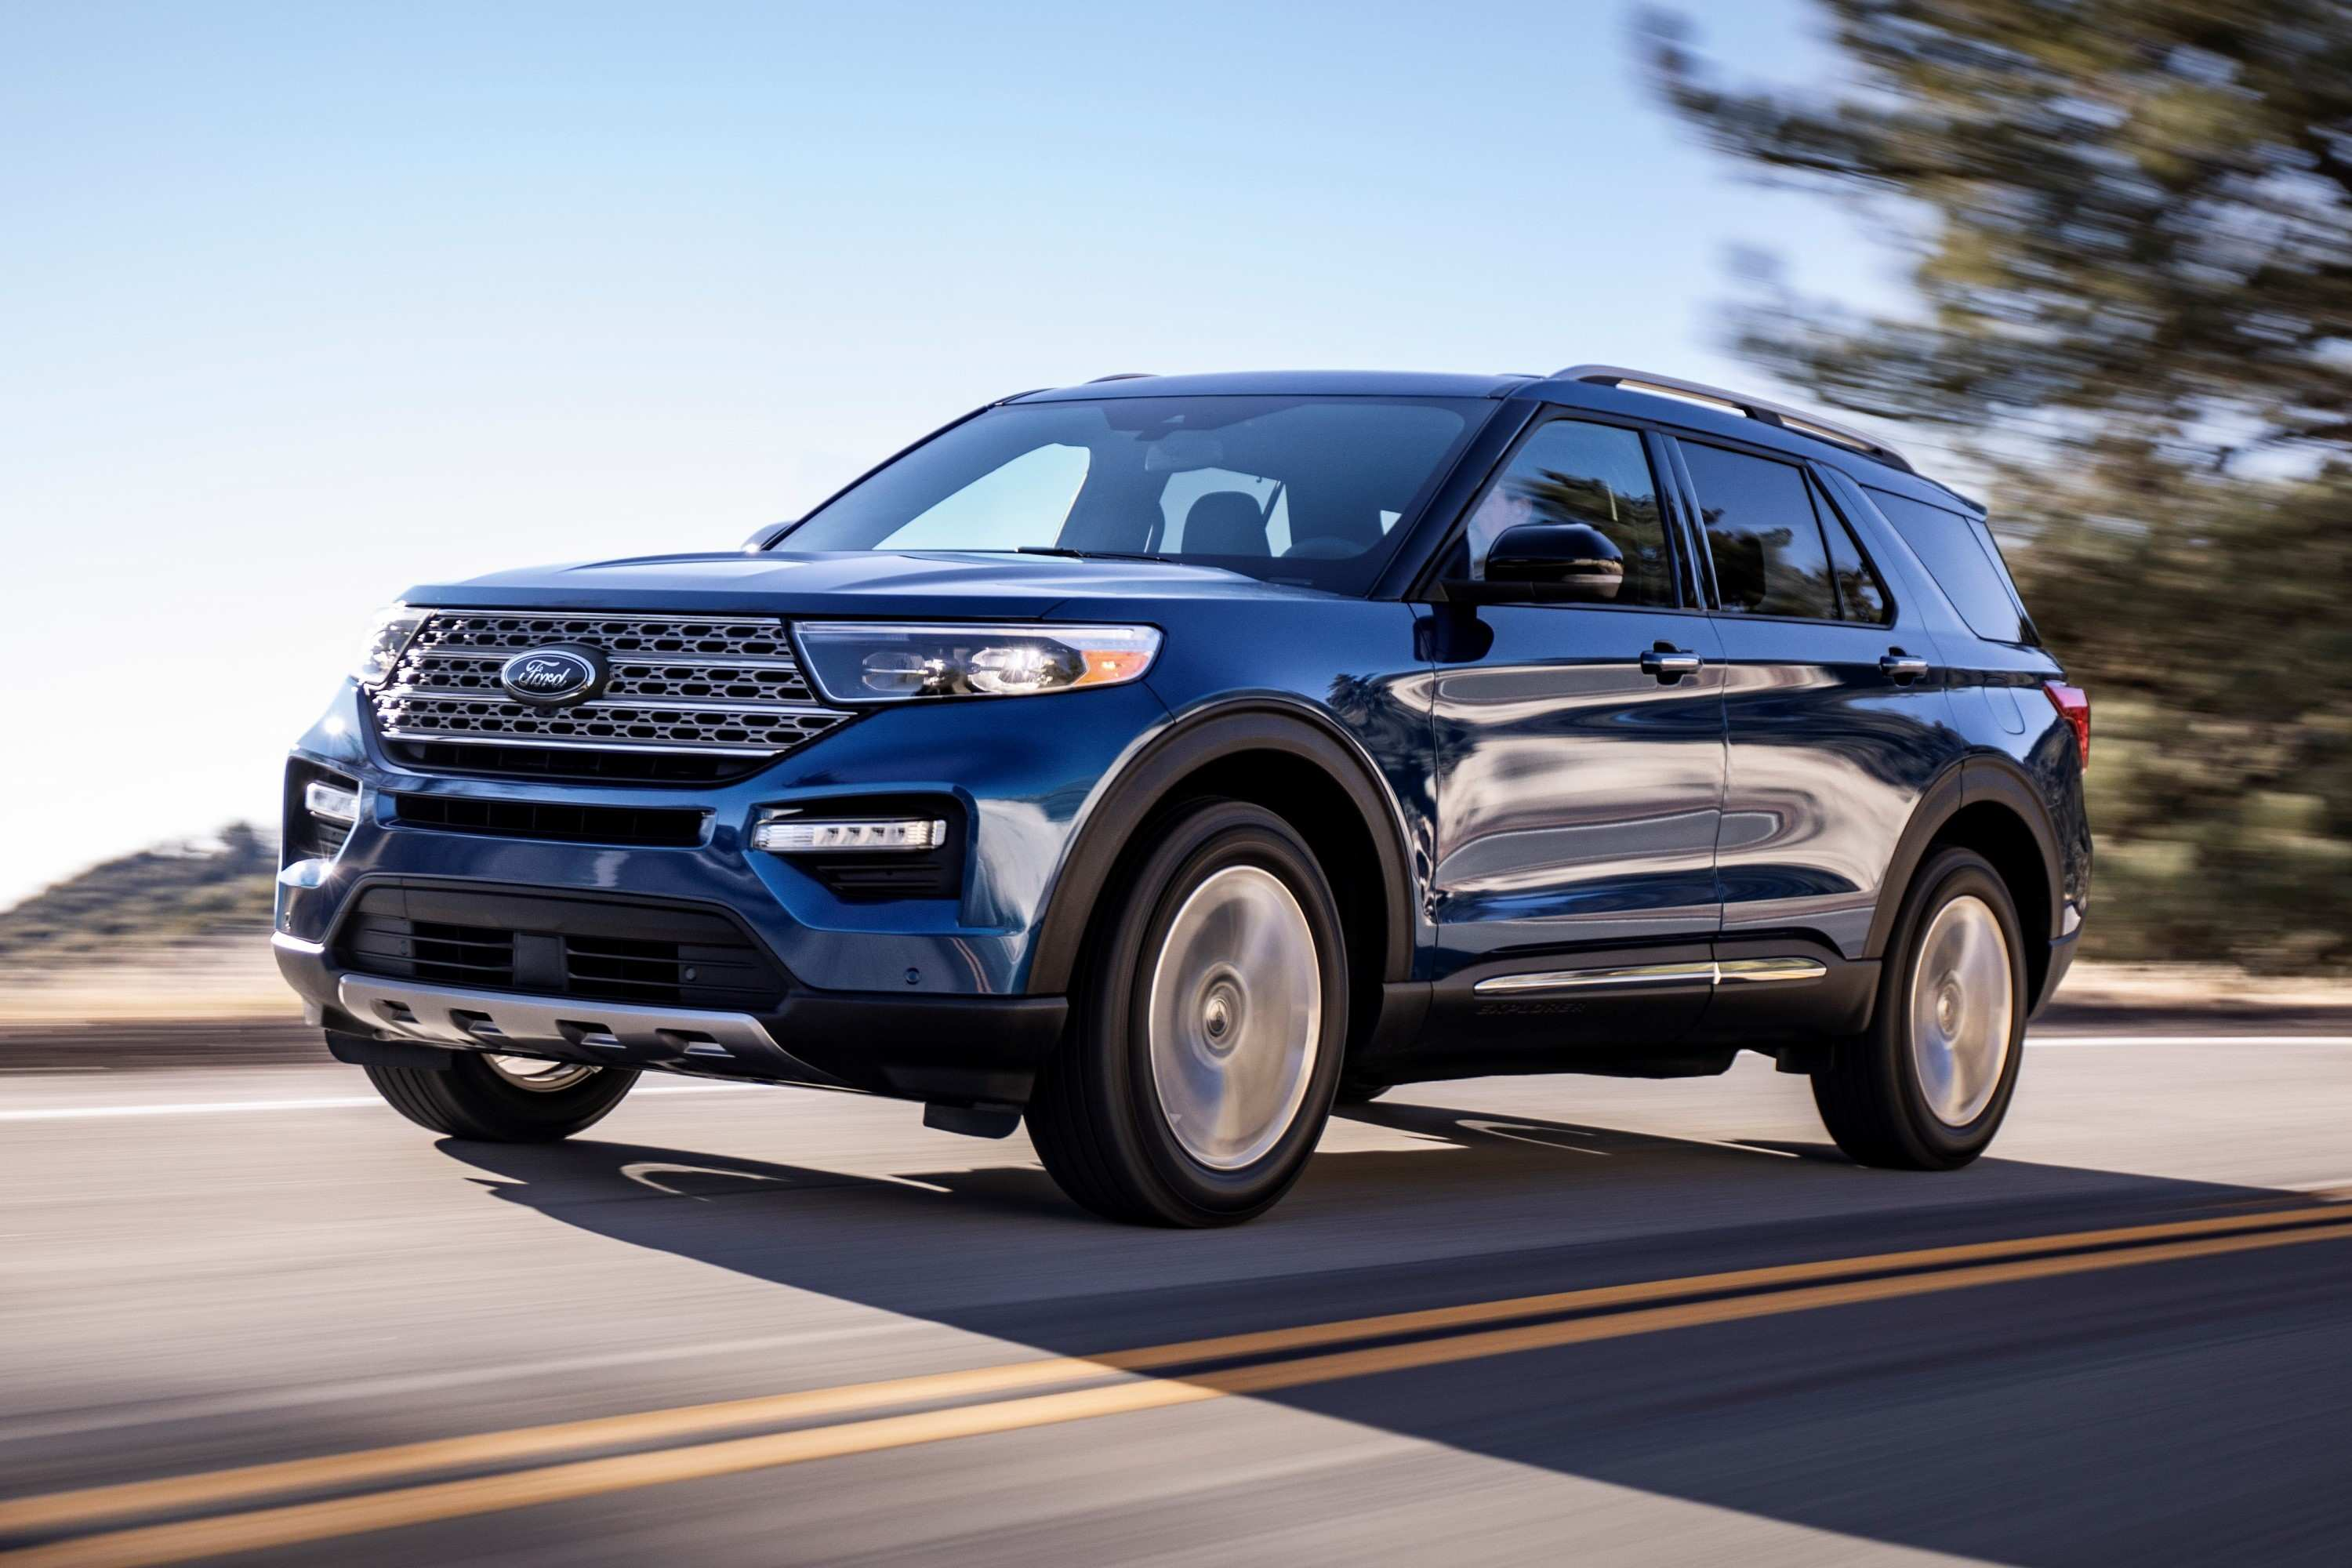 62 All New Ford Unveils The New 2020 Explorer Overview